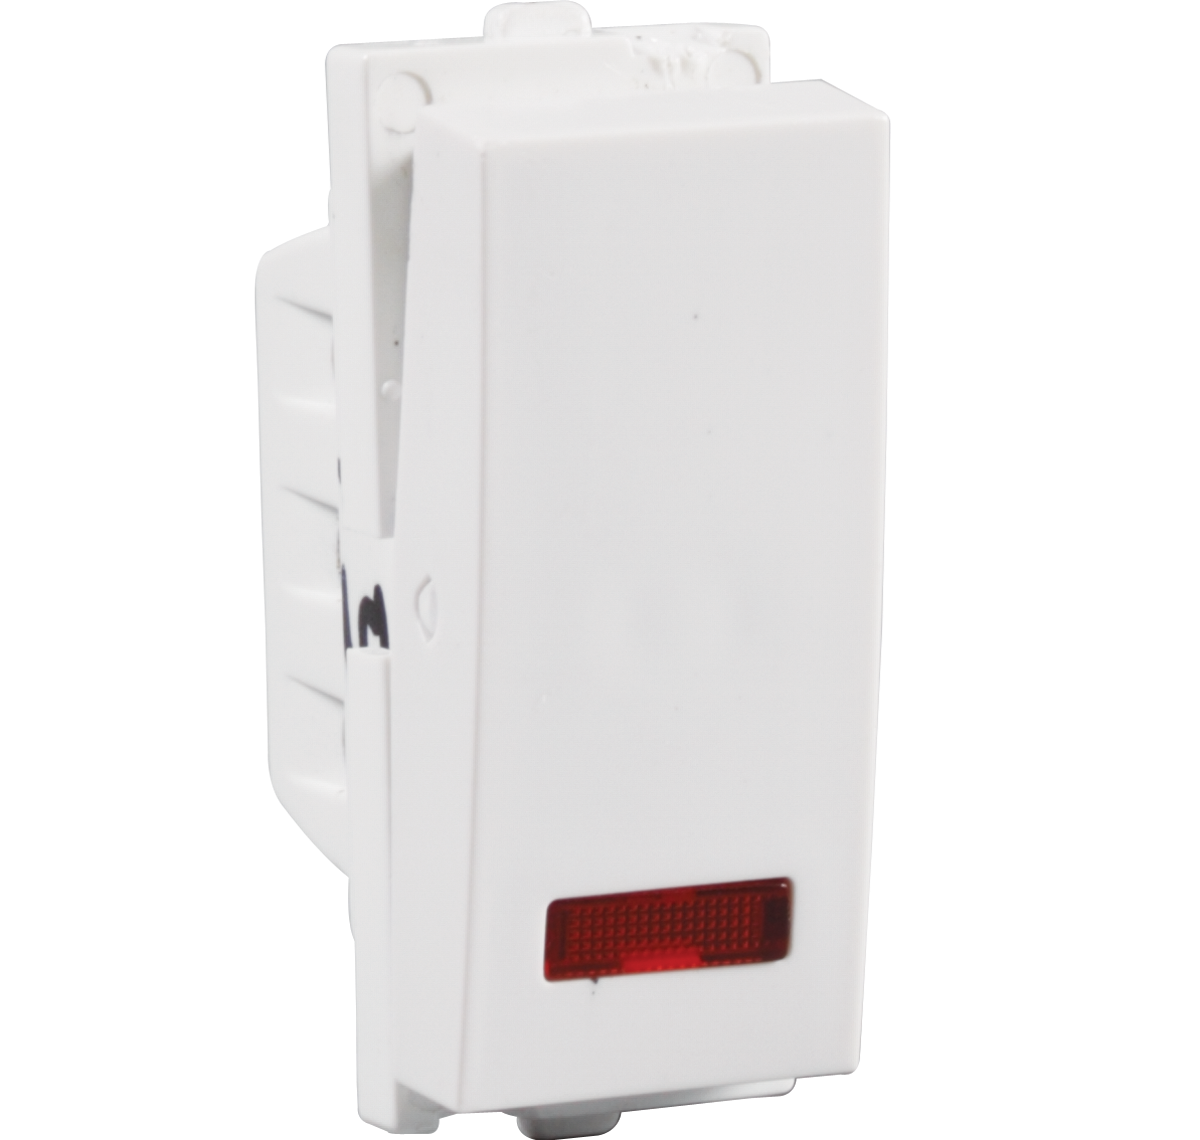 Crabtree - 16 A 1way switch with indicator